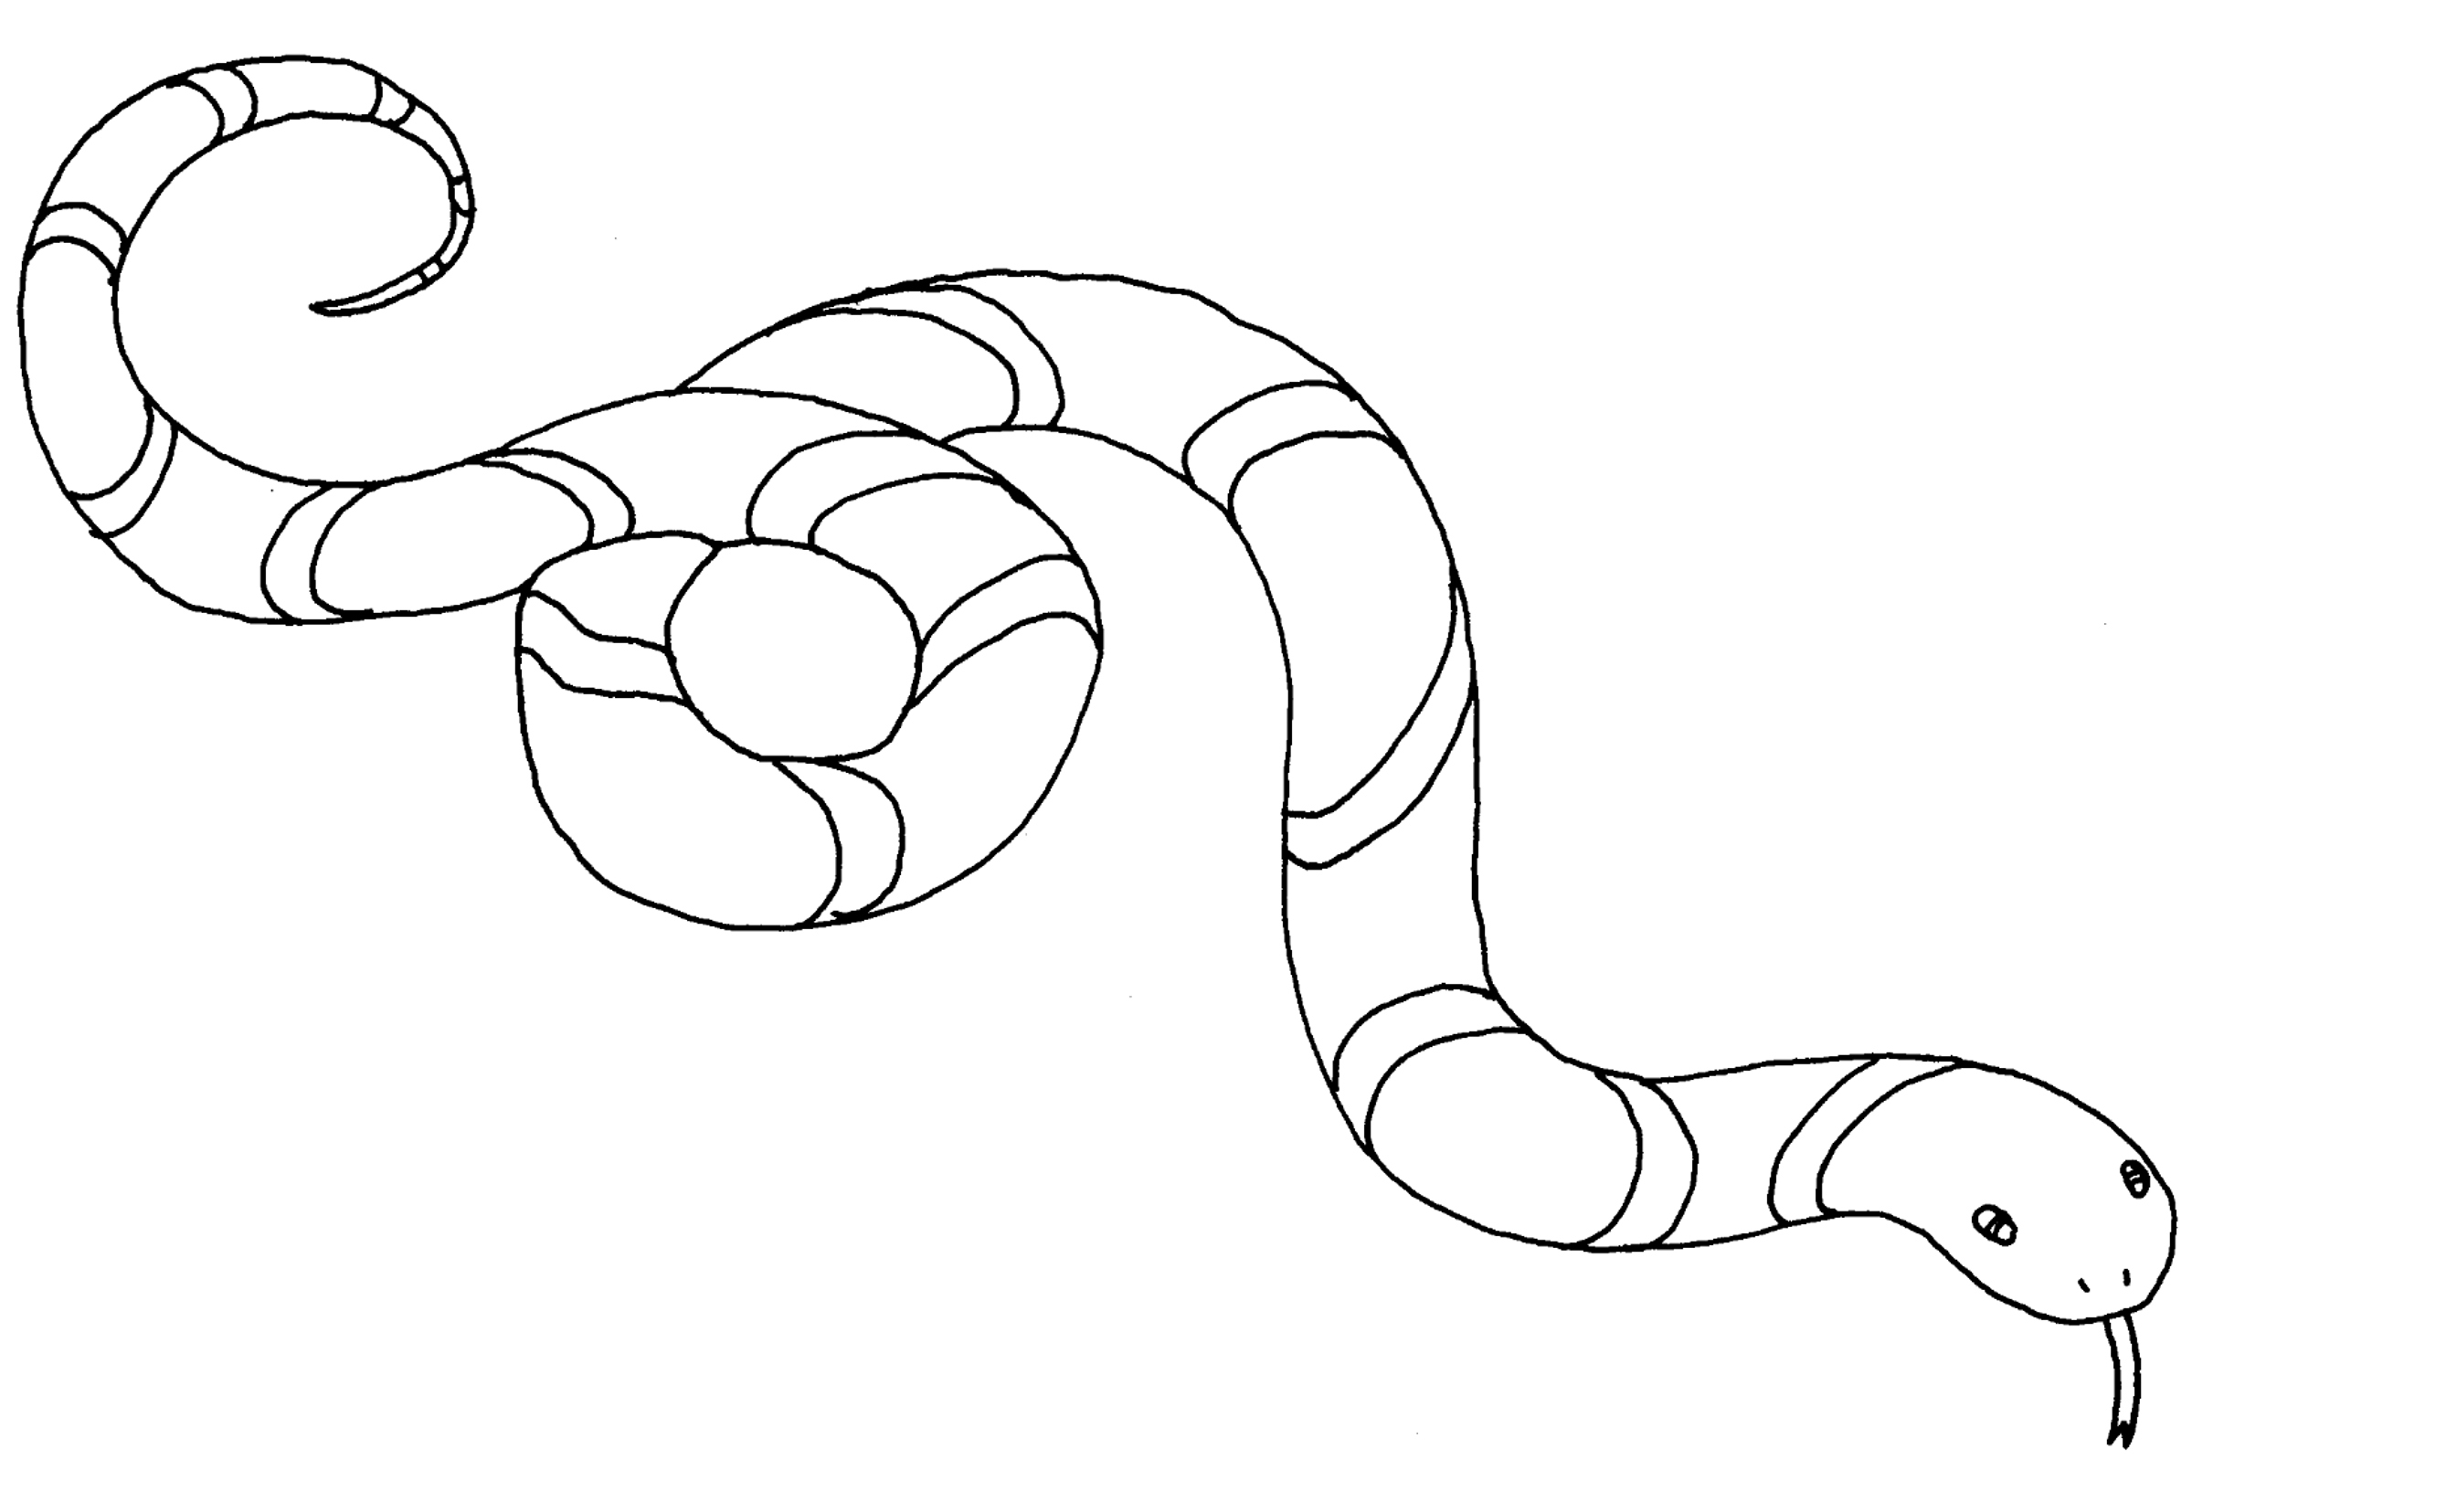 Coloriages imprimer serpent num ro 64872 - Tete de serpent dessin ...